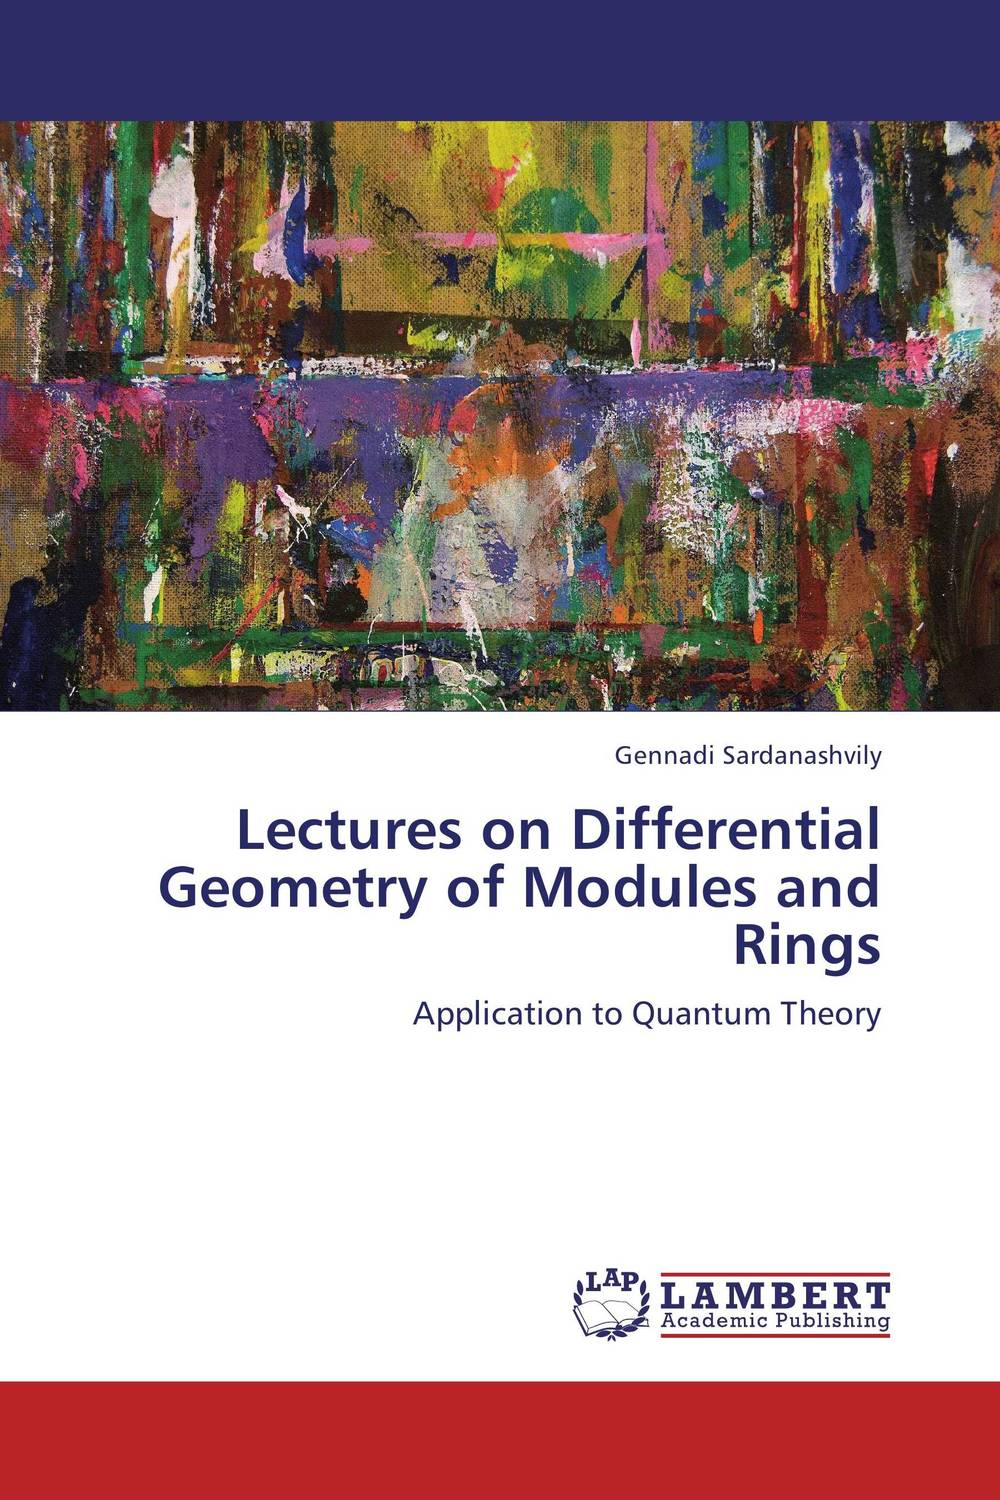 Lectures on Differential Geometry of Modules and Rings lectures on the heart sutra master q s lectures on buddhist sutra language chinese